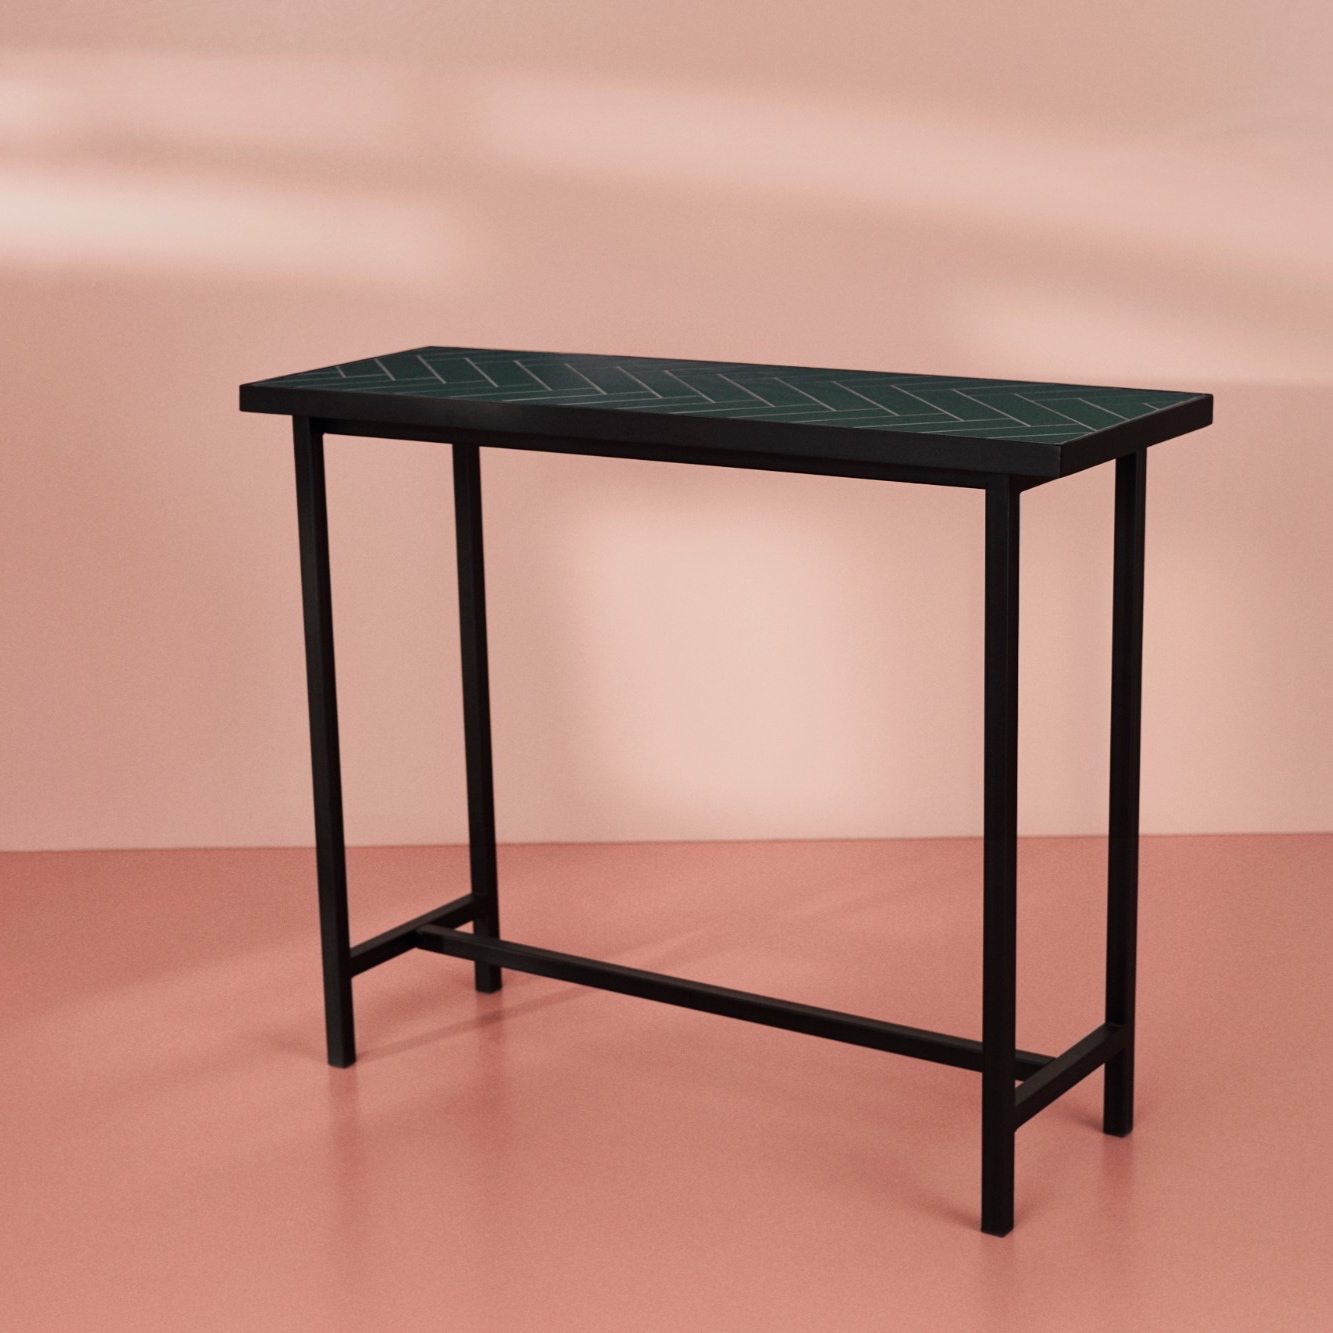 Charlotte Høncke 'Herringbone Tile' Console Table Image Credit: Warm Nordic